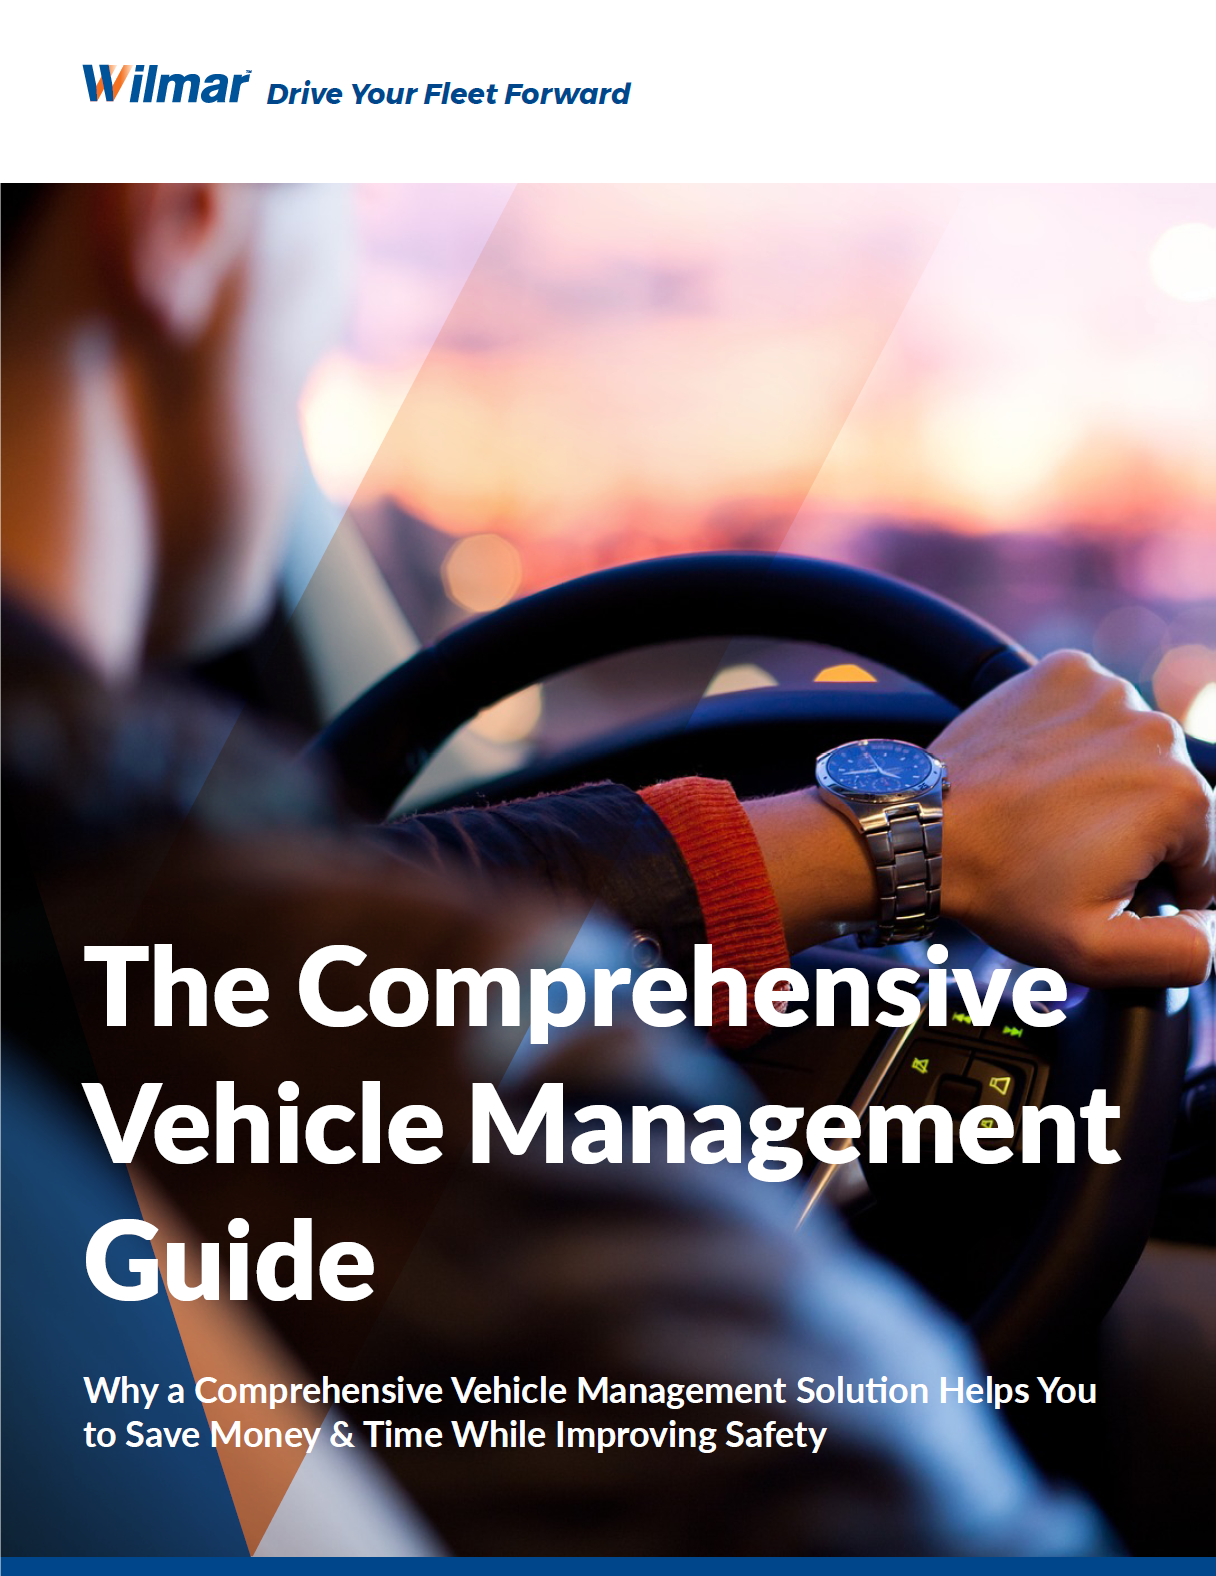 Vehicle management guide cover